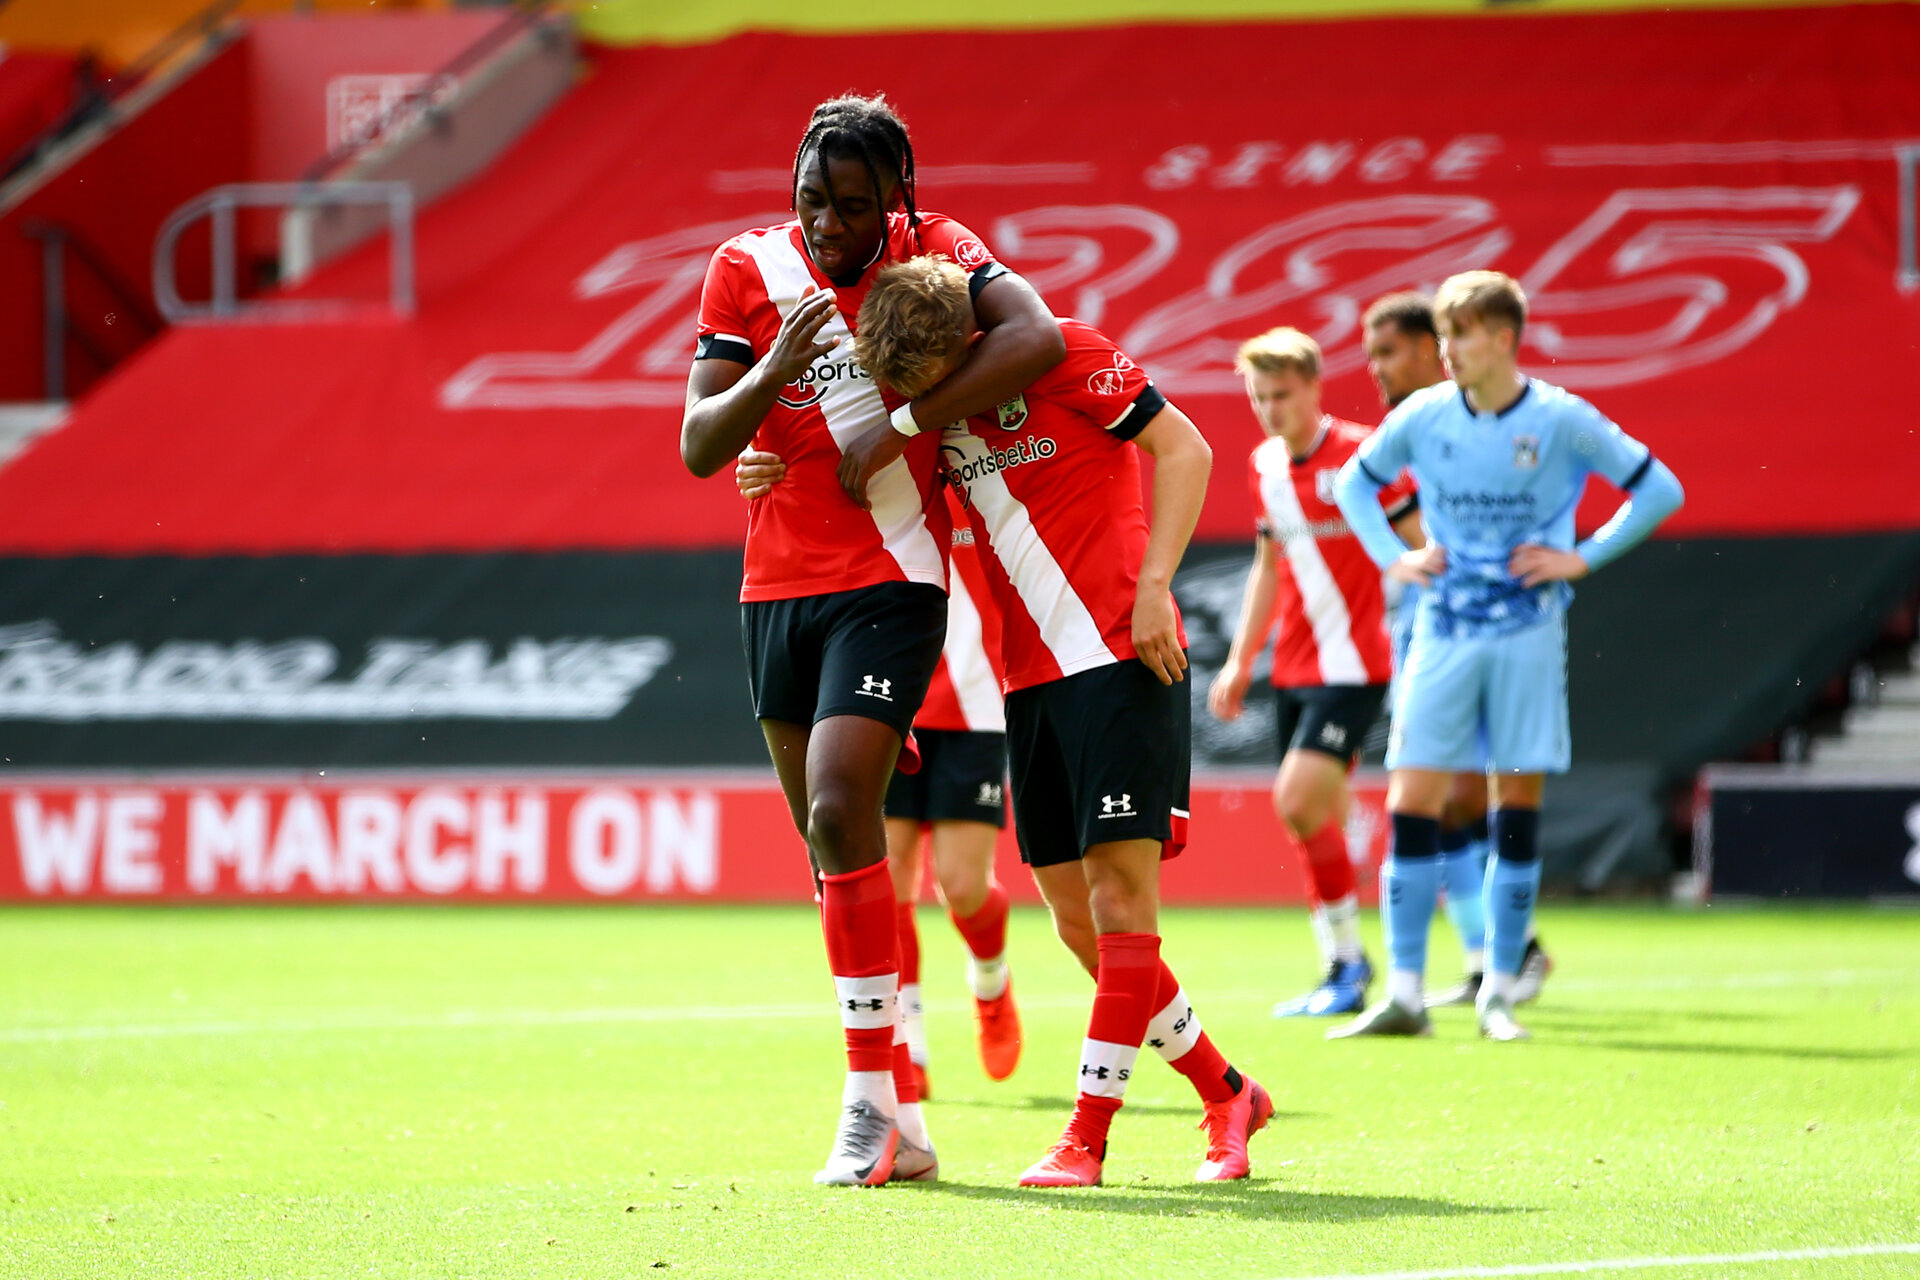 SOUTHAMPTON, ENGLAND - SEPTEMBER 1: Dan N'Lundulu (L) and Jake Vokins (R) celebrating Jake Vokins goal during a pre-season friendly match between Southampton U23 and Coventry City at St Mary's Stadium on September 1, 2020 in Southampton, United Kingdom. (Photo by Isabelle Field/Southampton FC)